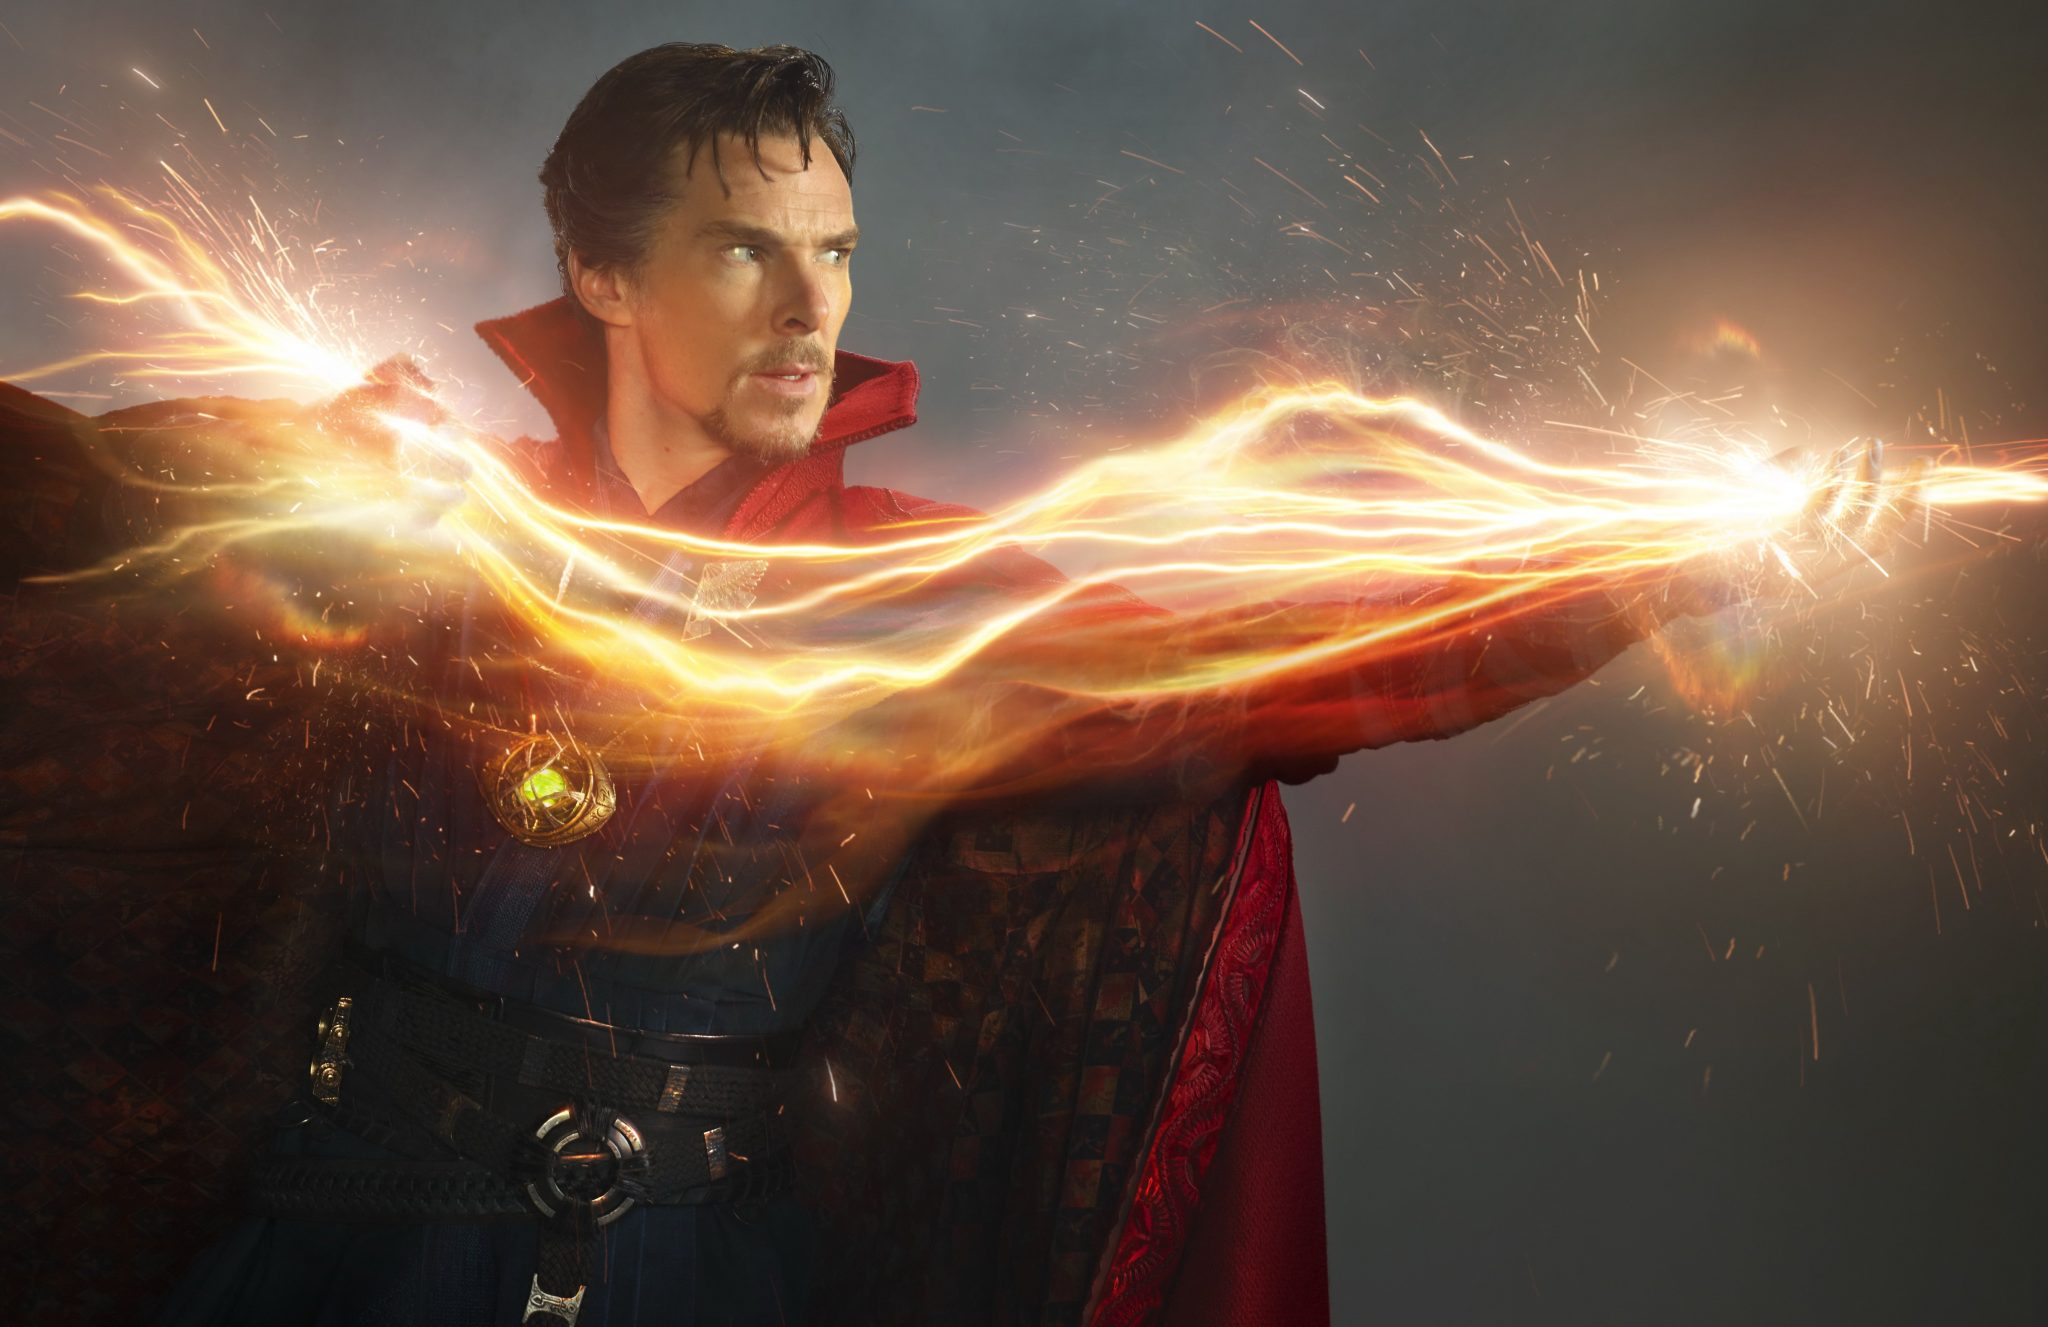 Snarcasm: The 'Doctor Strange' Teaser Is an Insult to Humanity